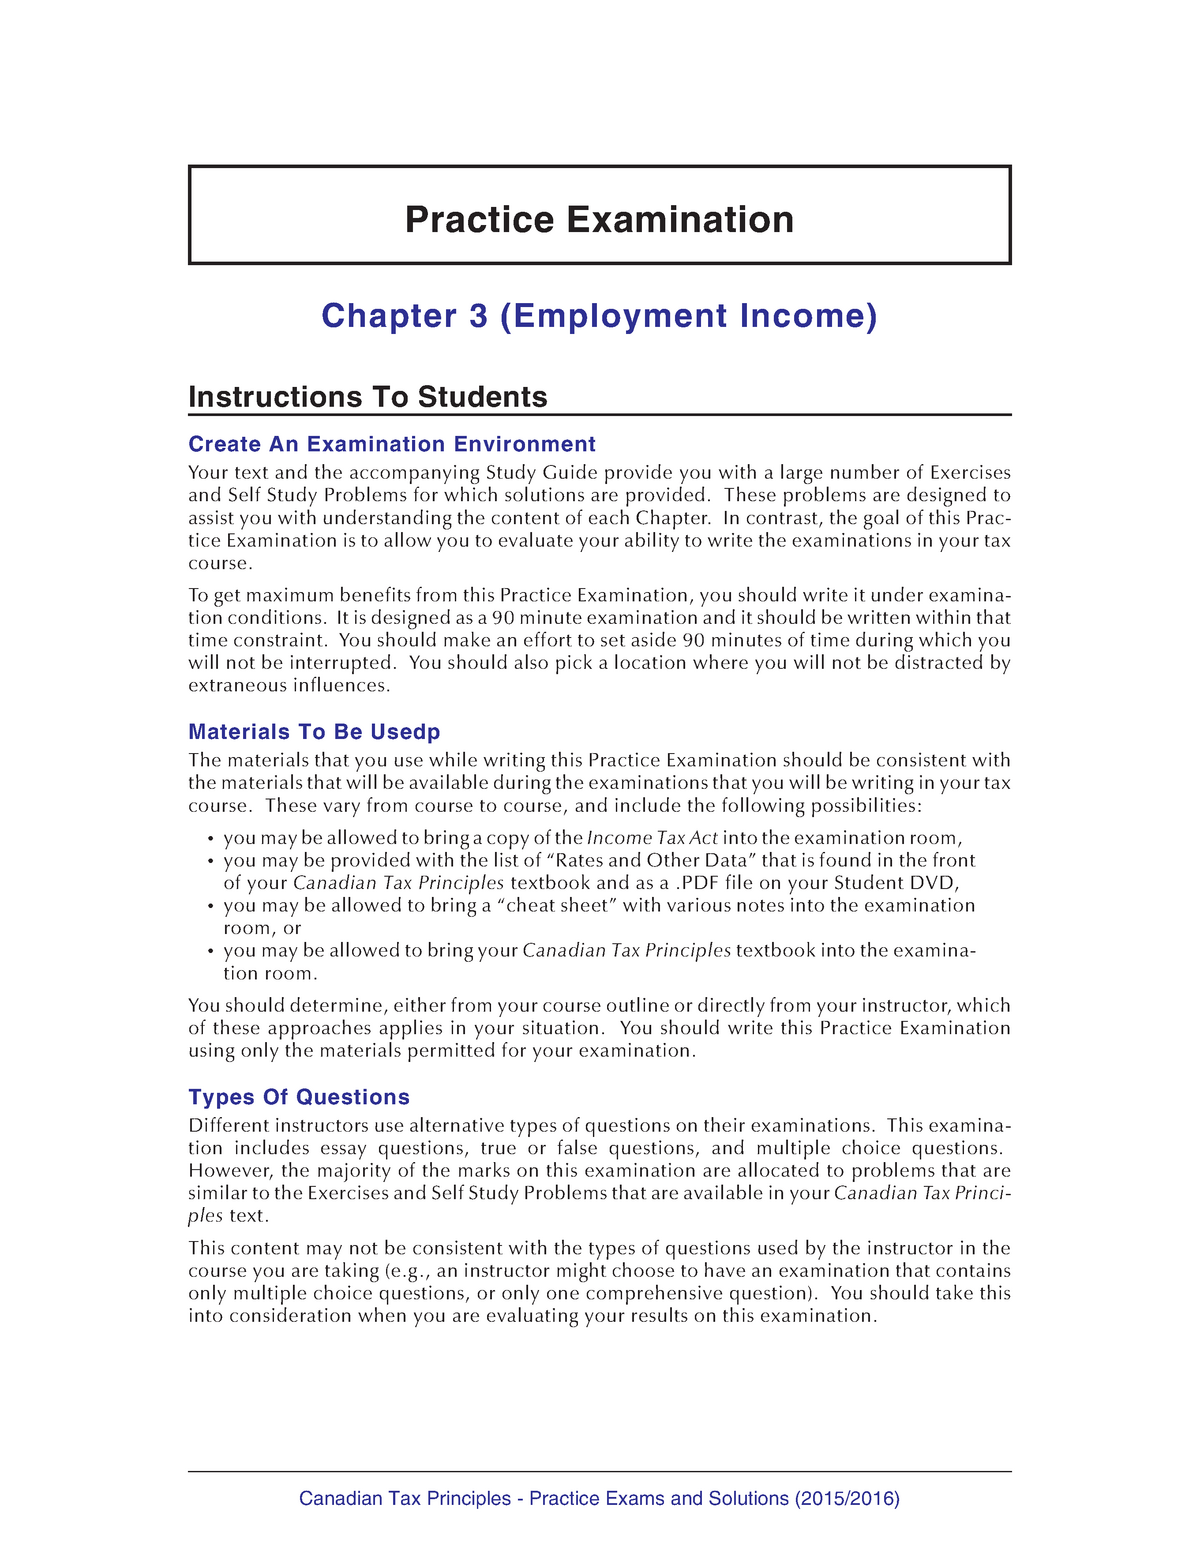 Sample/practice exam 2015, questions and answers -for